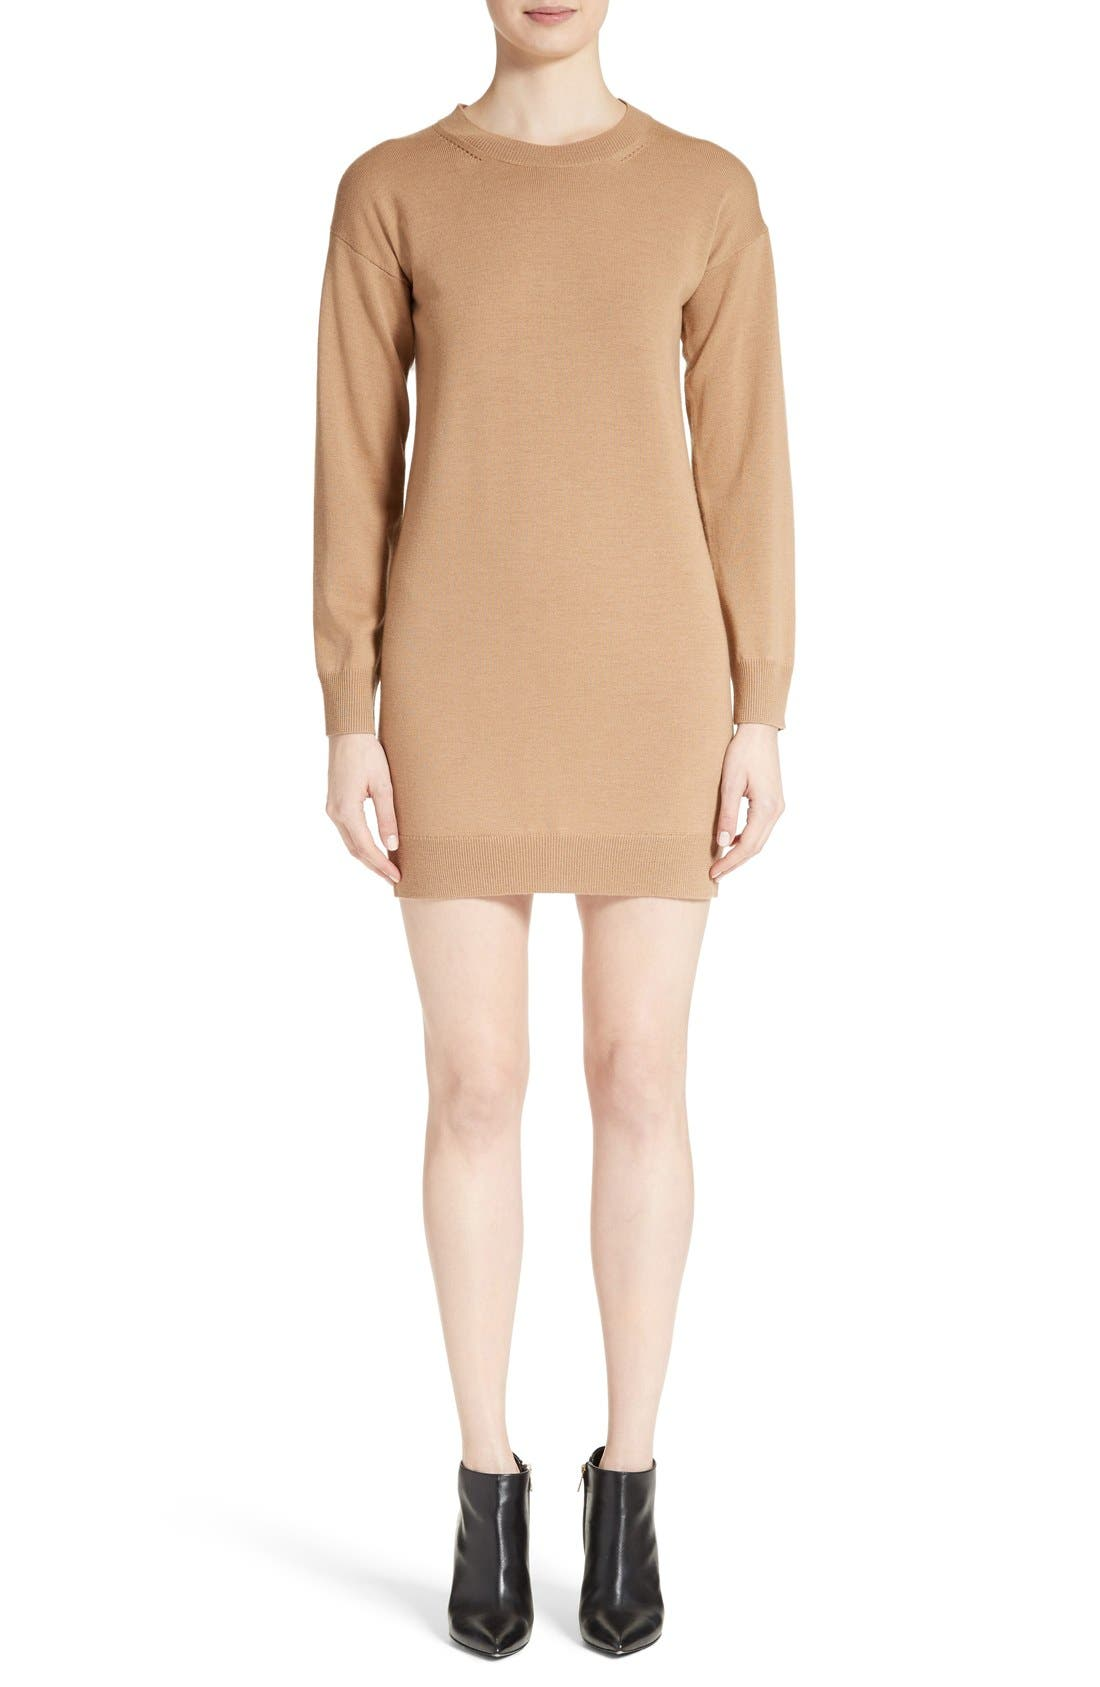 Alewater Elbow Patch Merino Wool Dress,                         Main,                         color, Camel